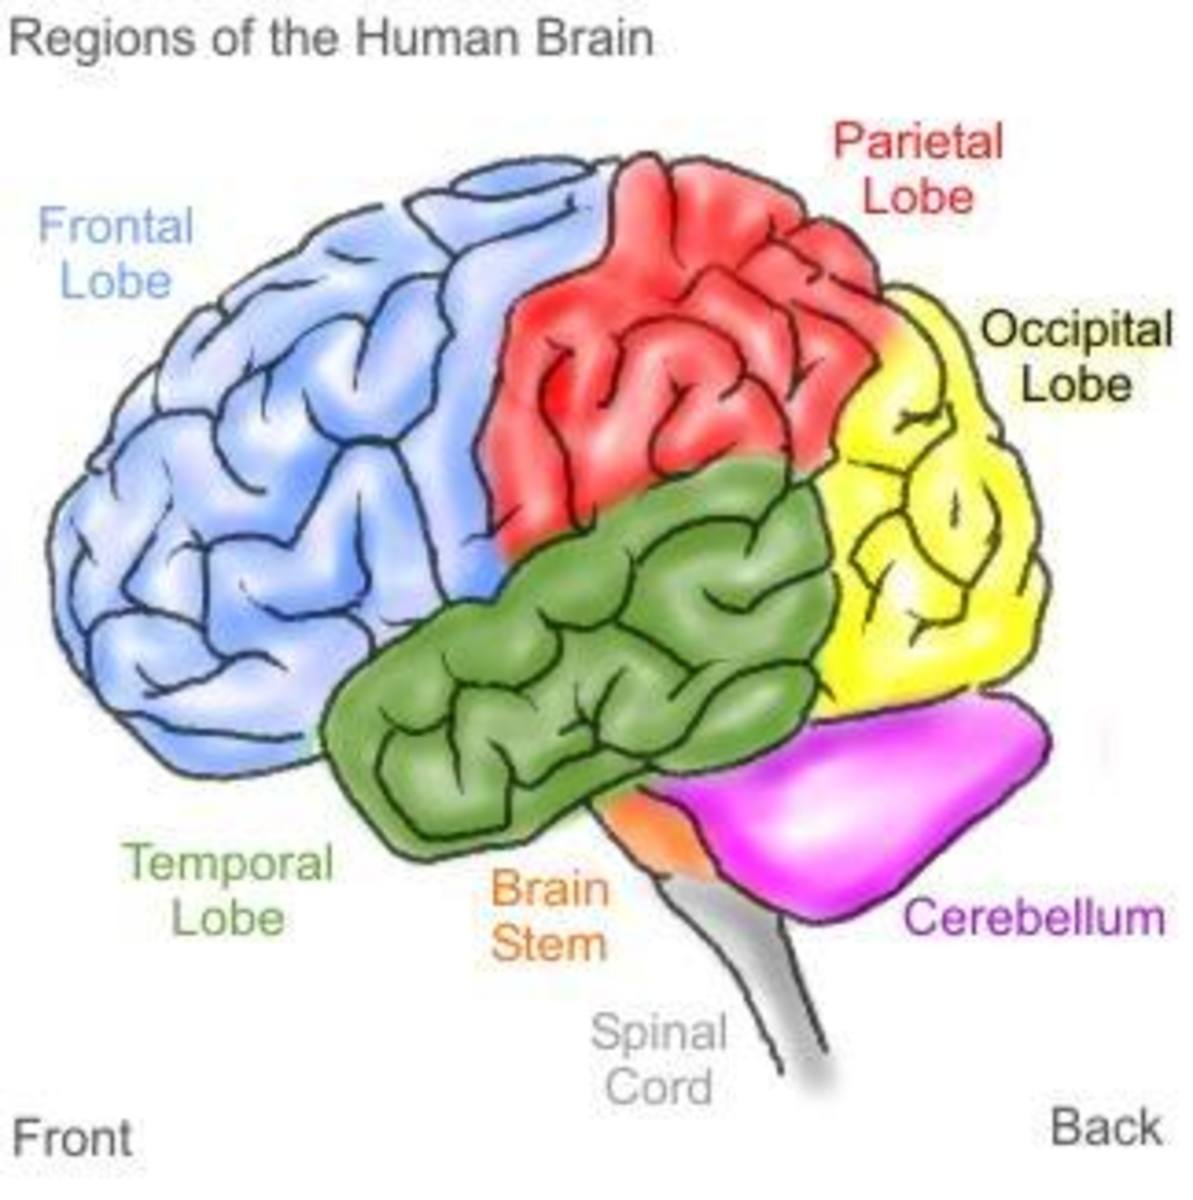 Various parts of the brain.